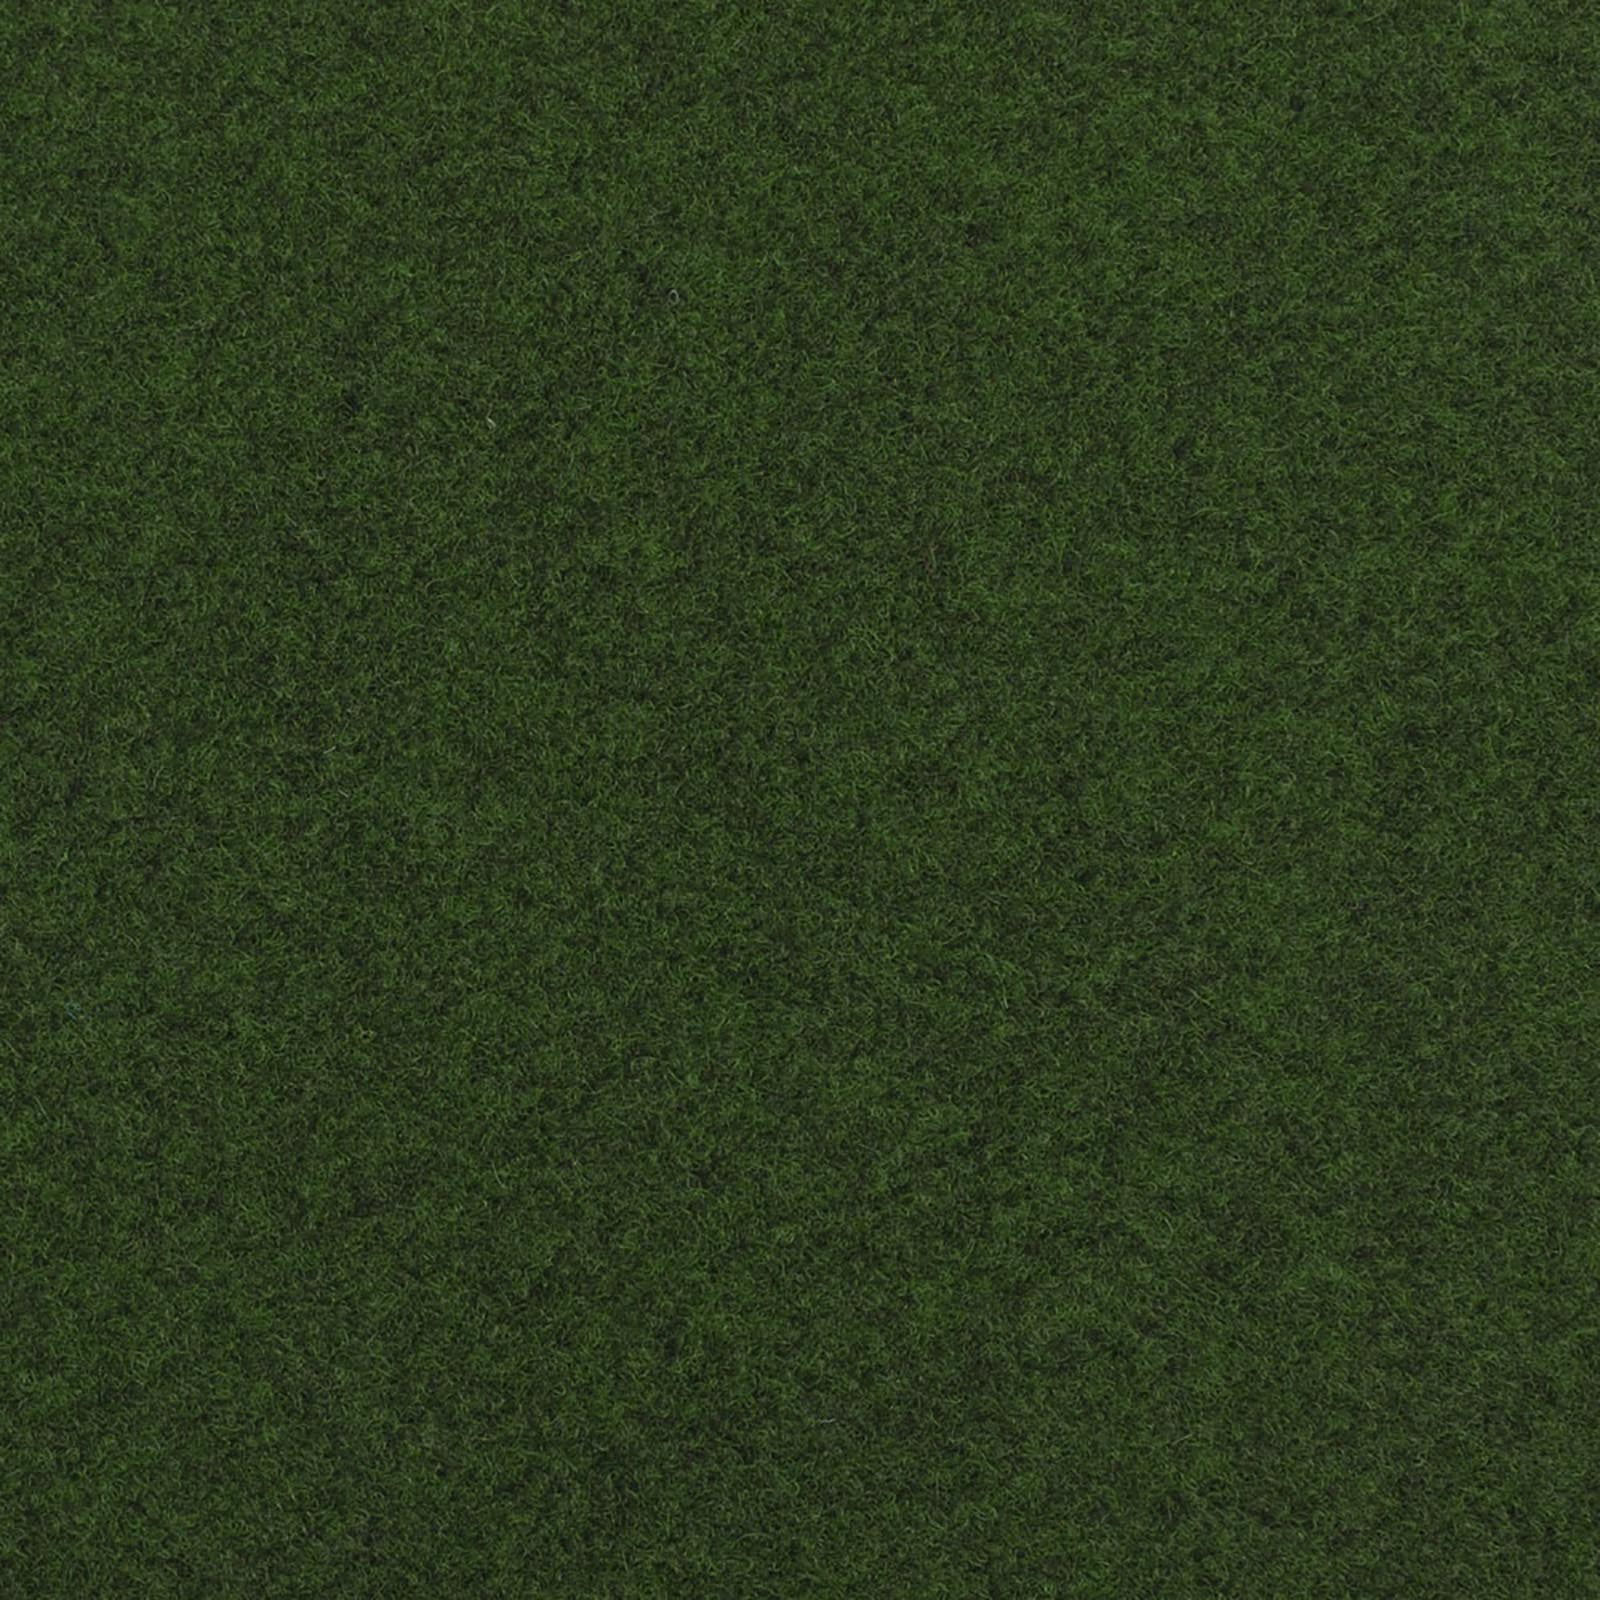 Dark Green Outdoor Carpet - Far